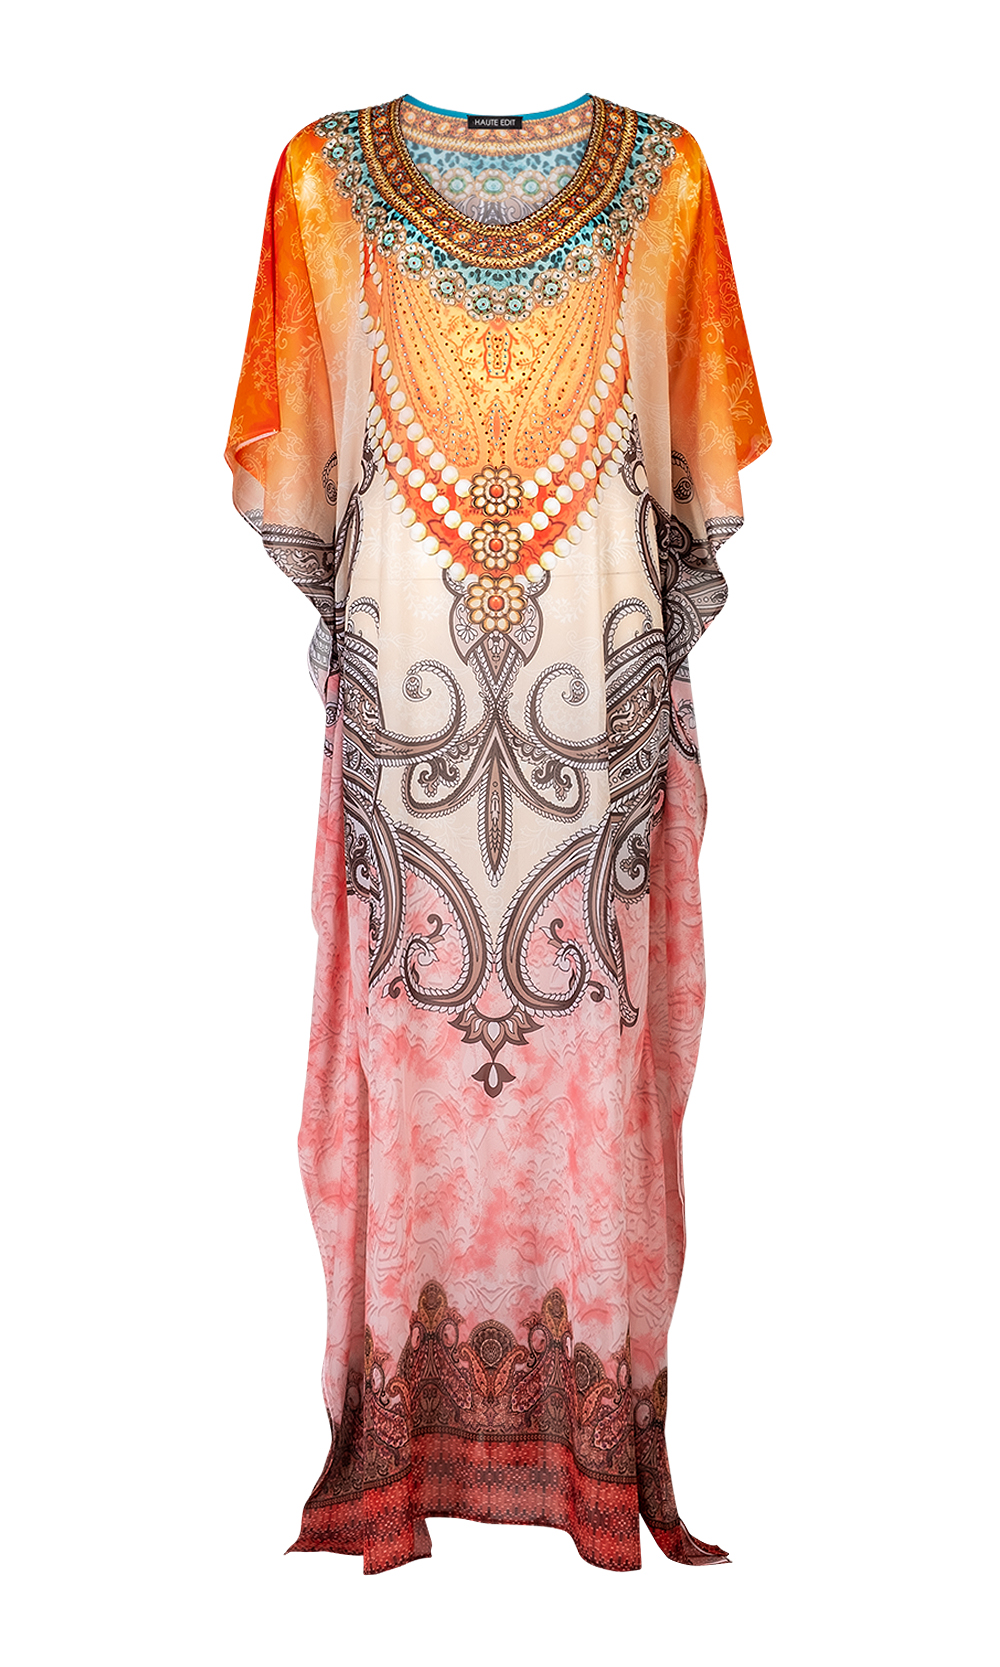 Stylish Maxi Beach Coverup Bohemian Kaftan